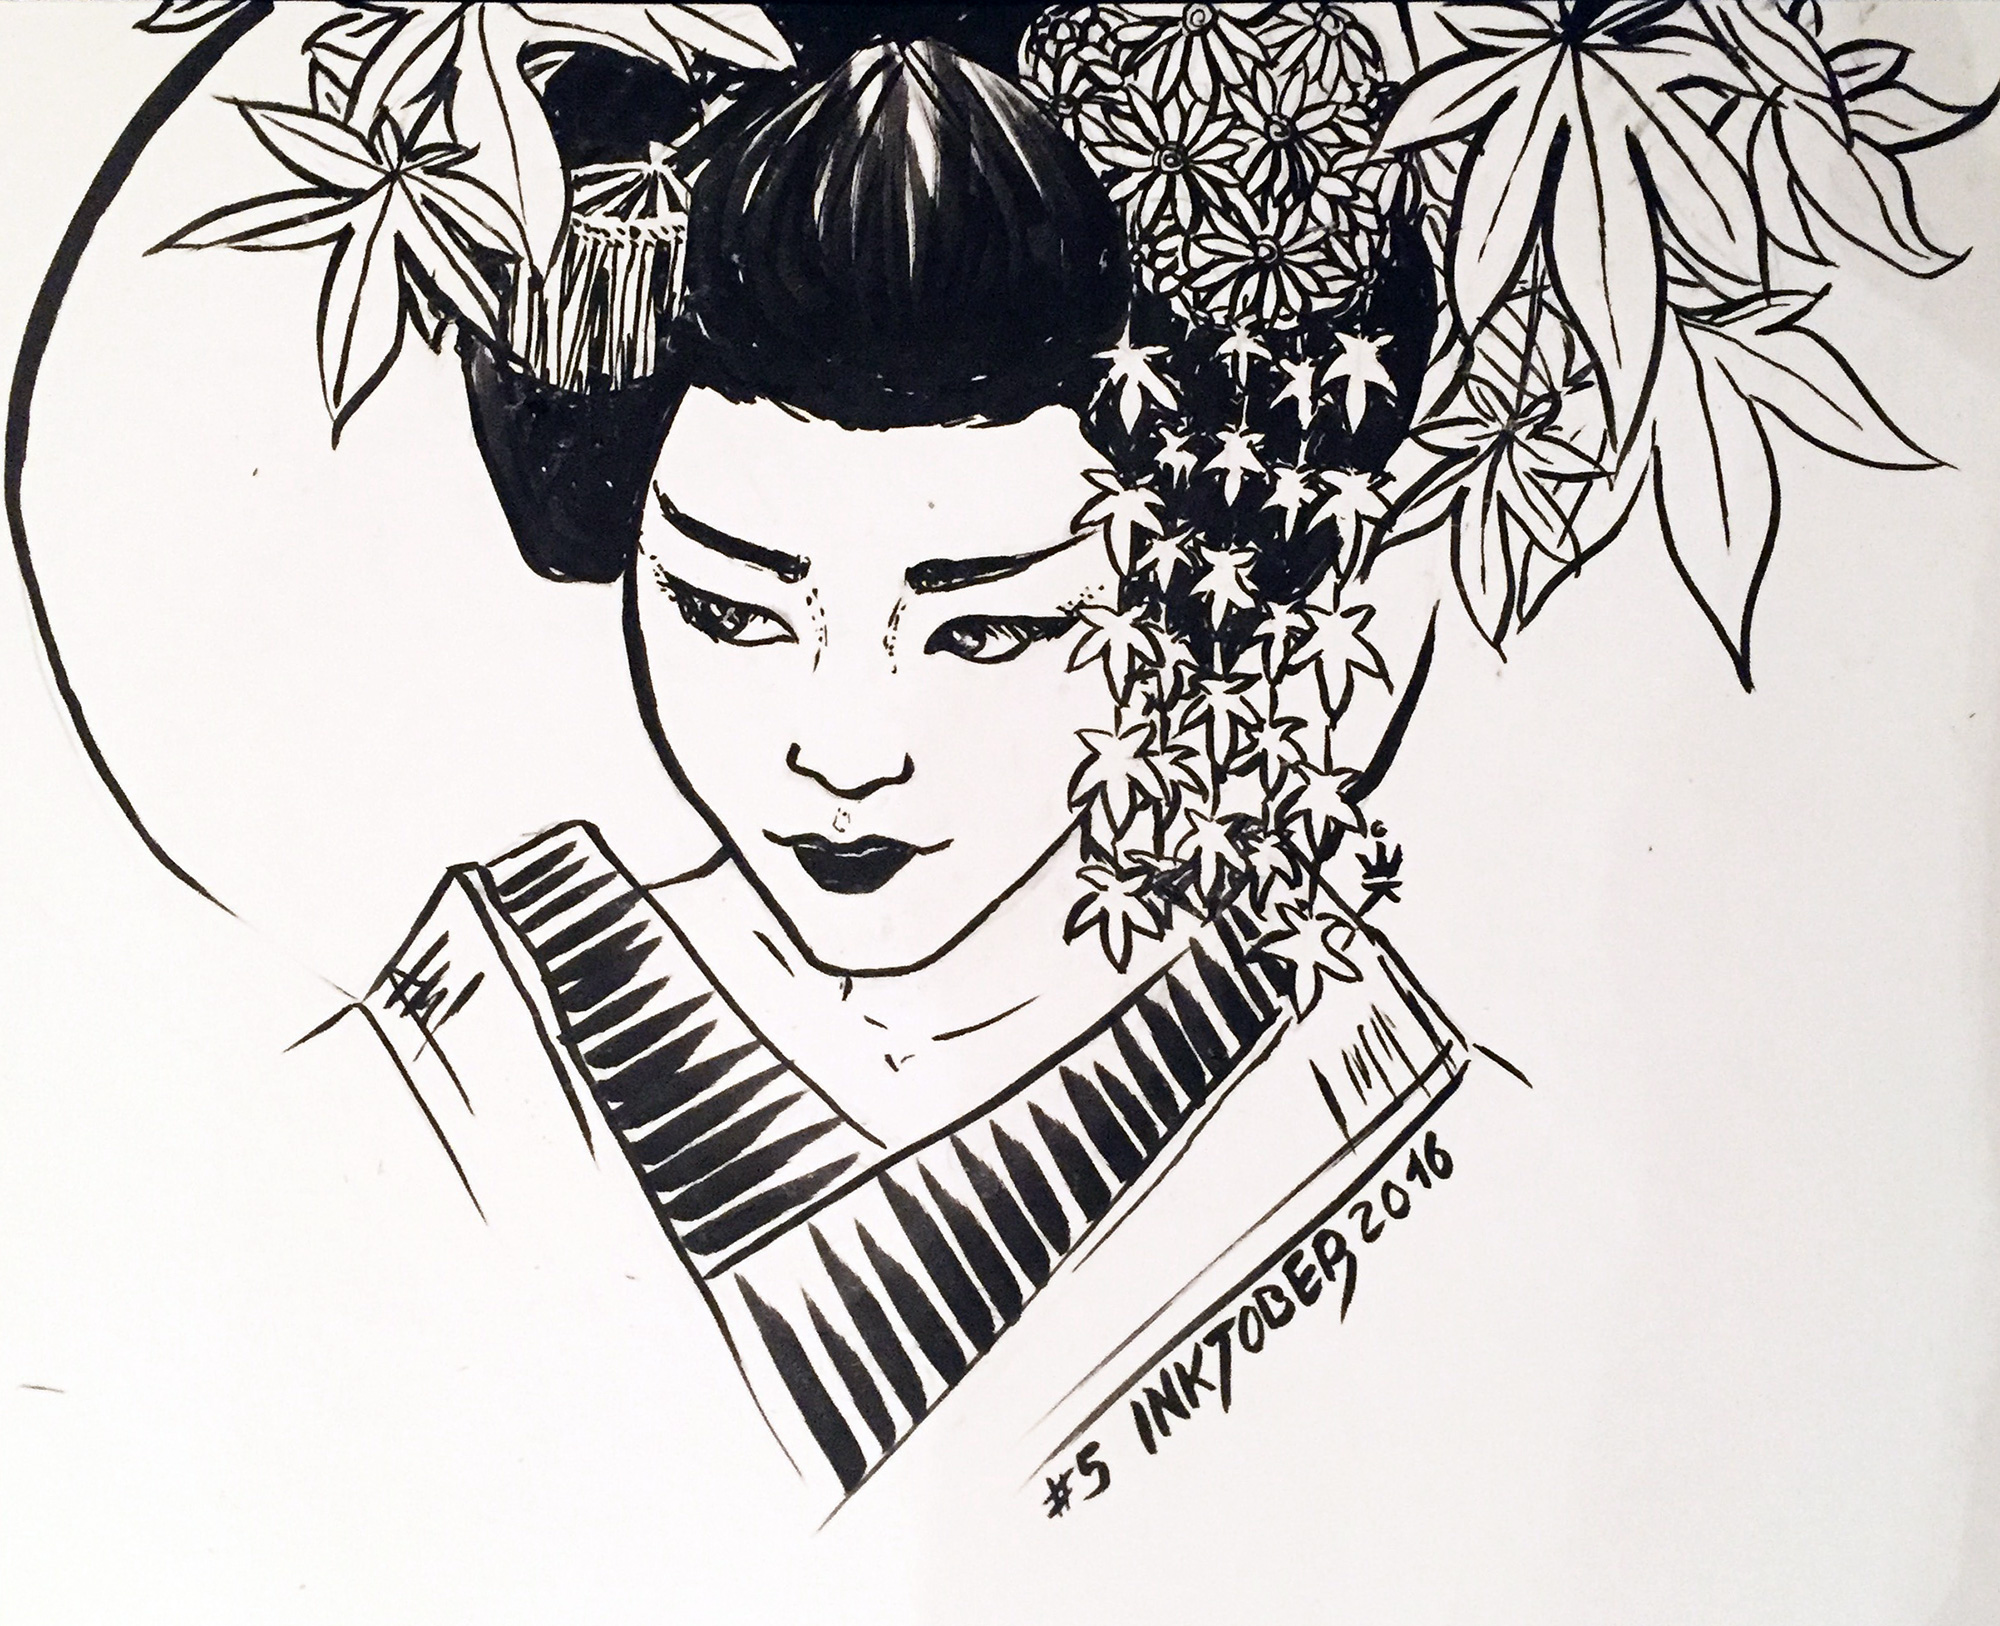 Inktober 2016 - 5: Maiko (c) Esther Wagner